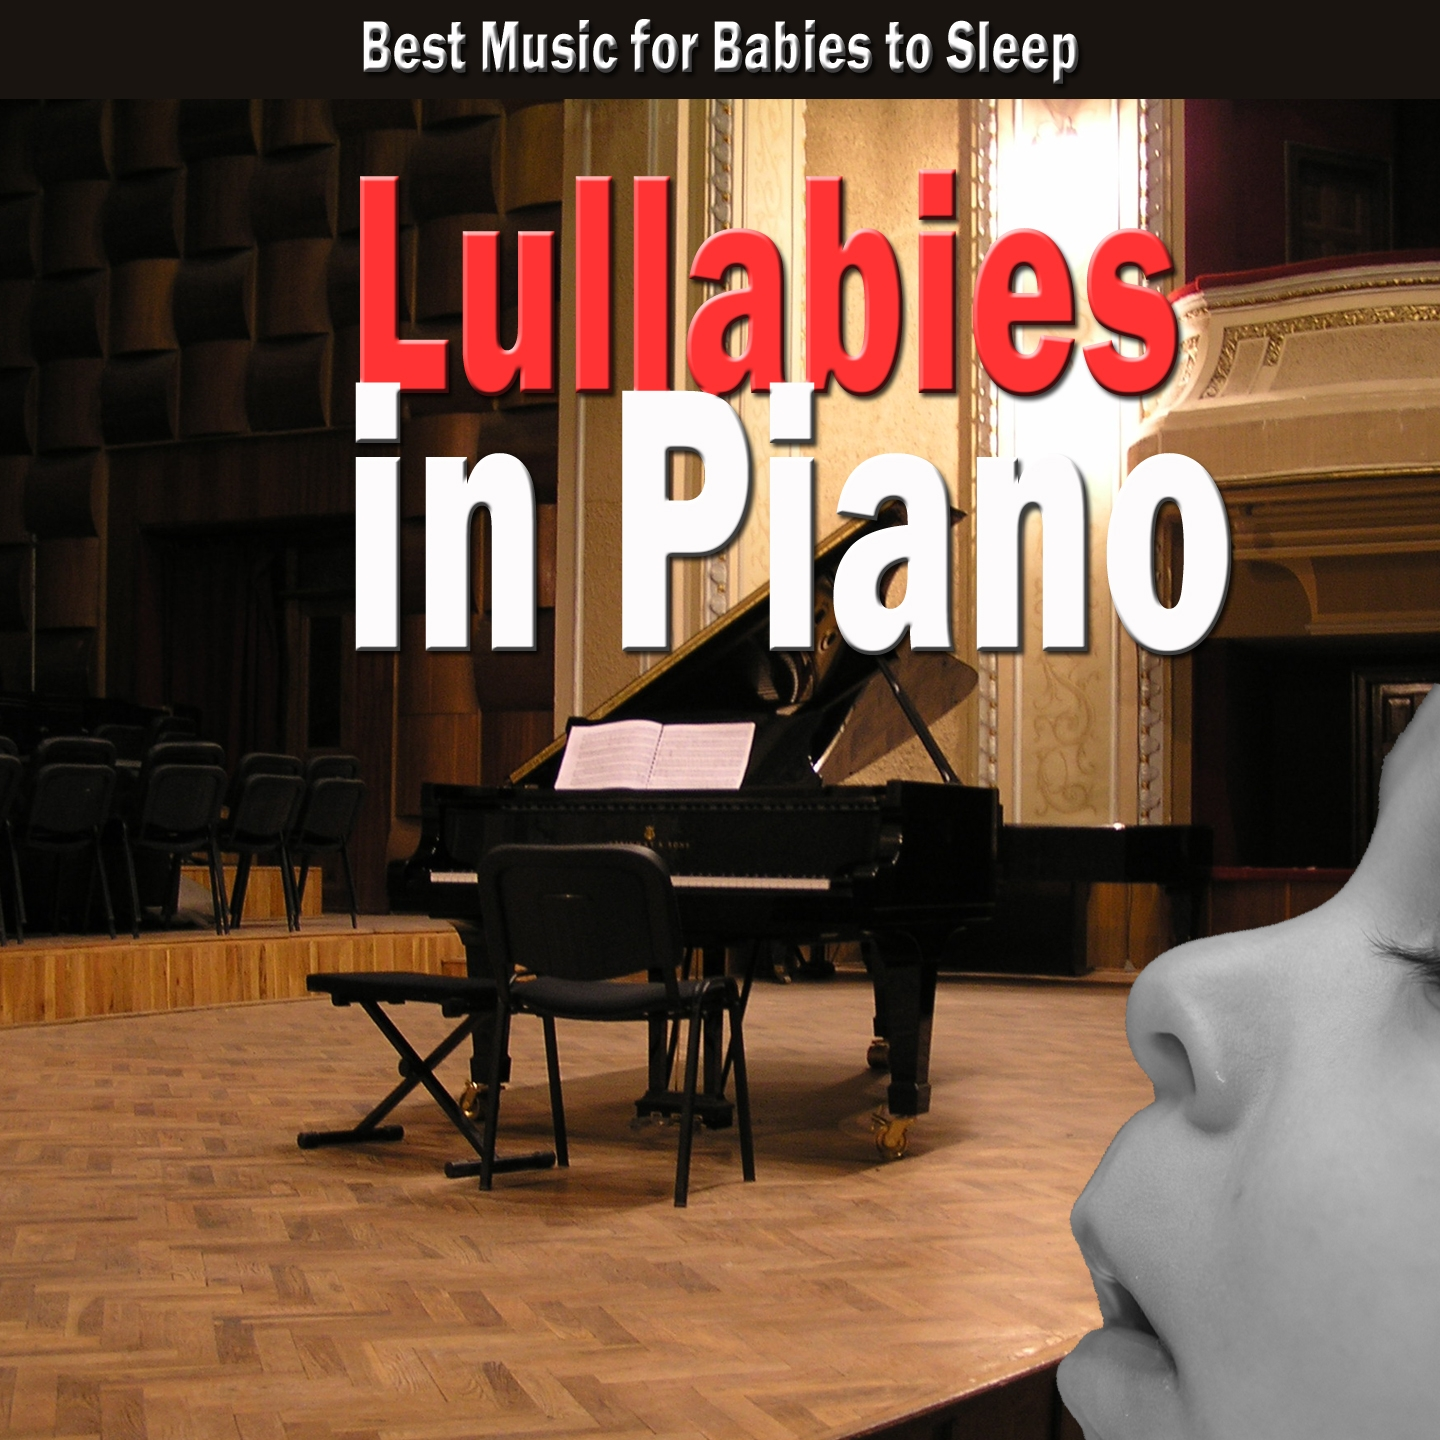 Lullabies in Piano